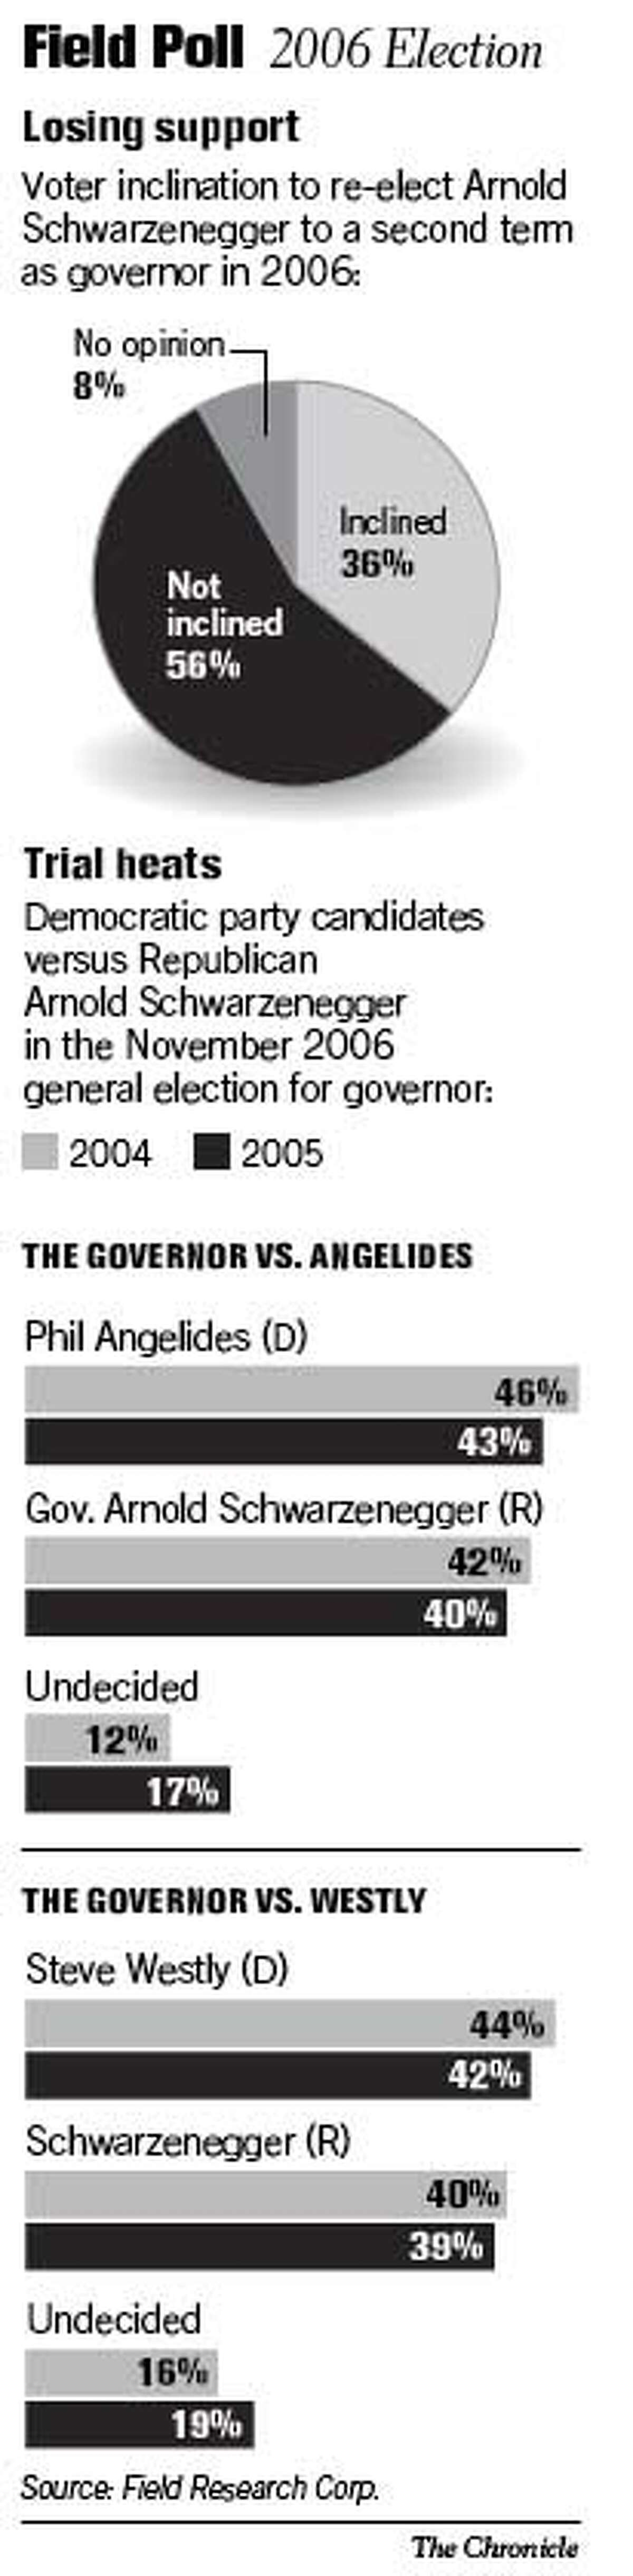 Field Poll / 2006 Election. Chronicle Graphic